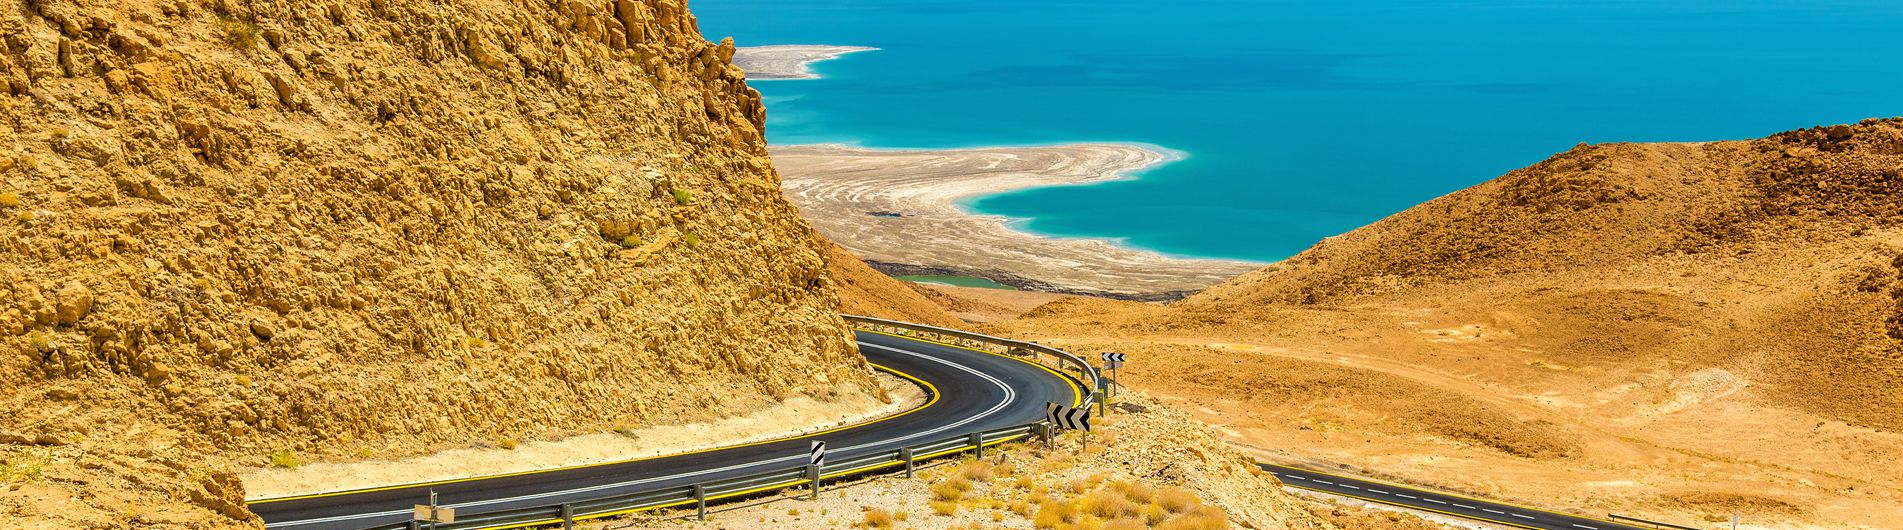 Dead Sea, Israel Holidays